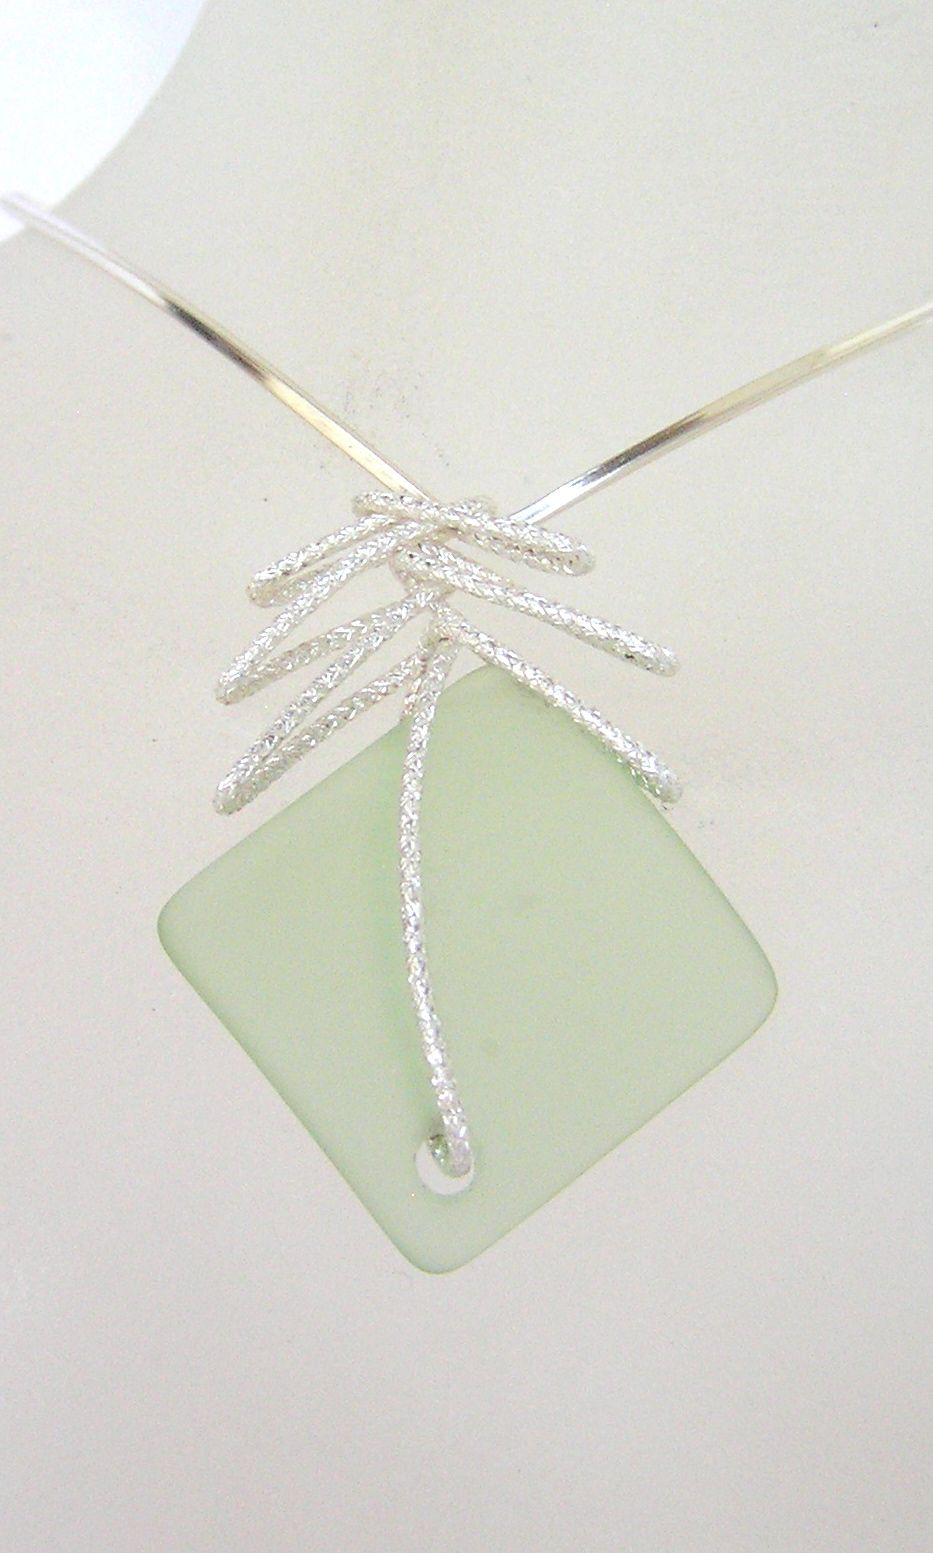 Cute sea glass pendant, like it?